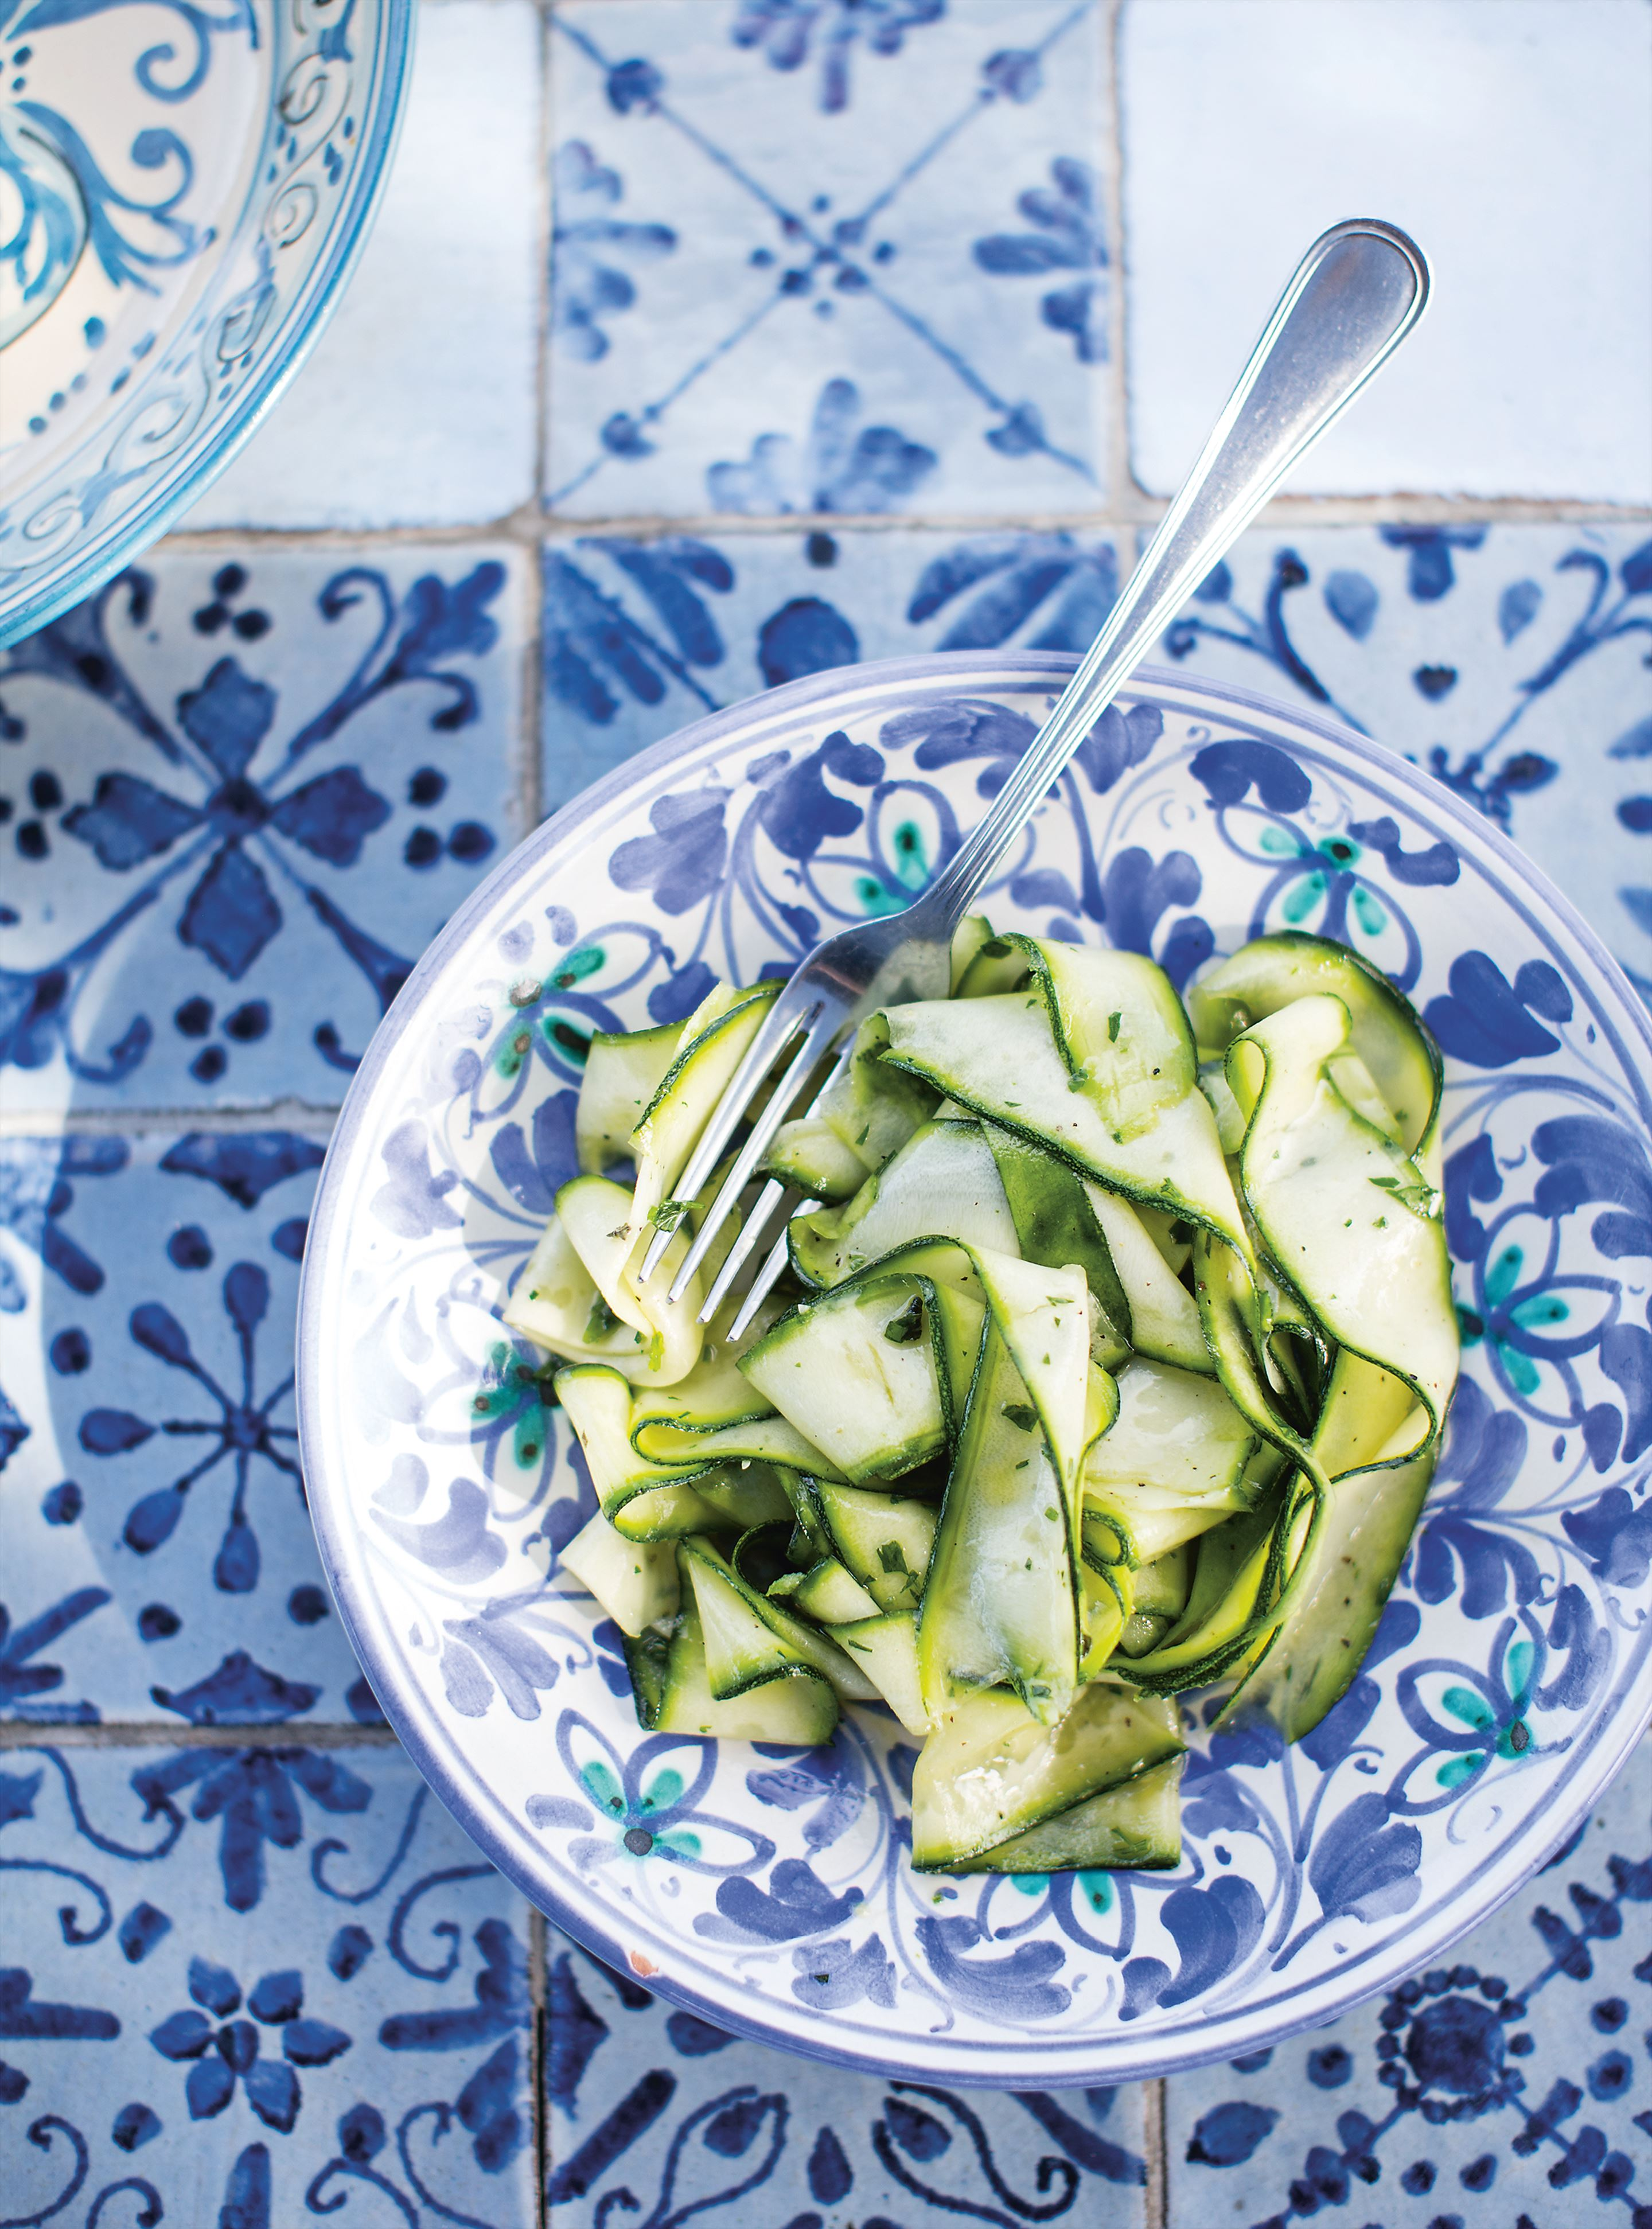 Courgette ribbons in lemon & oregano dressing